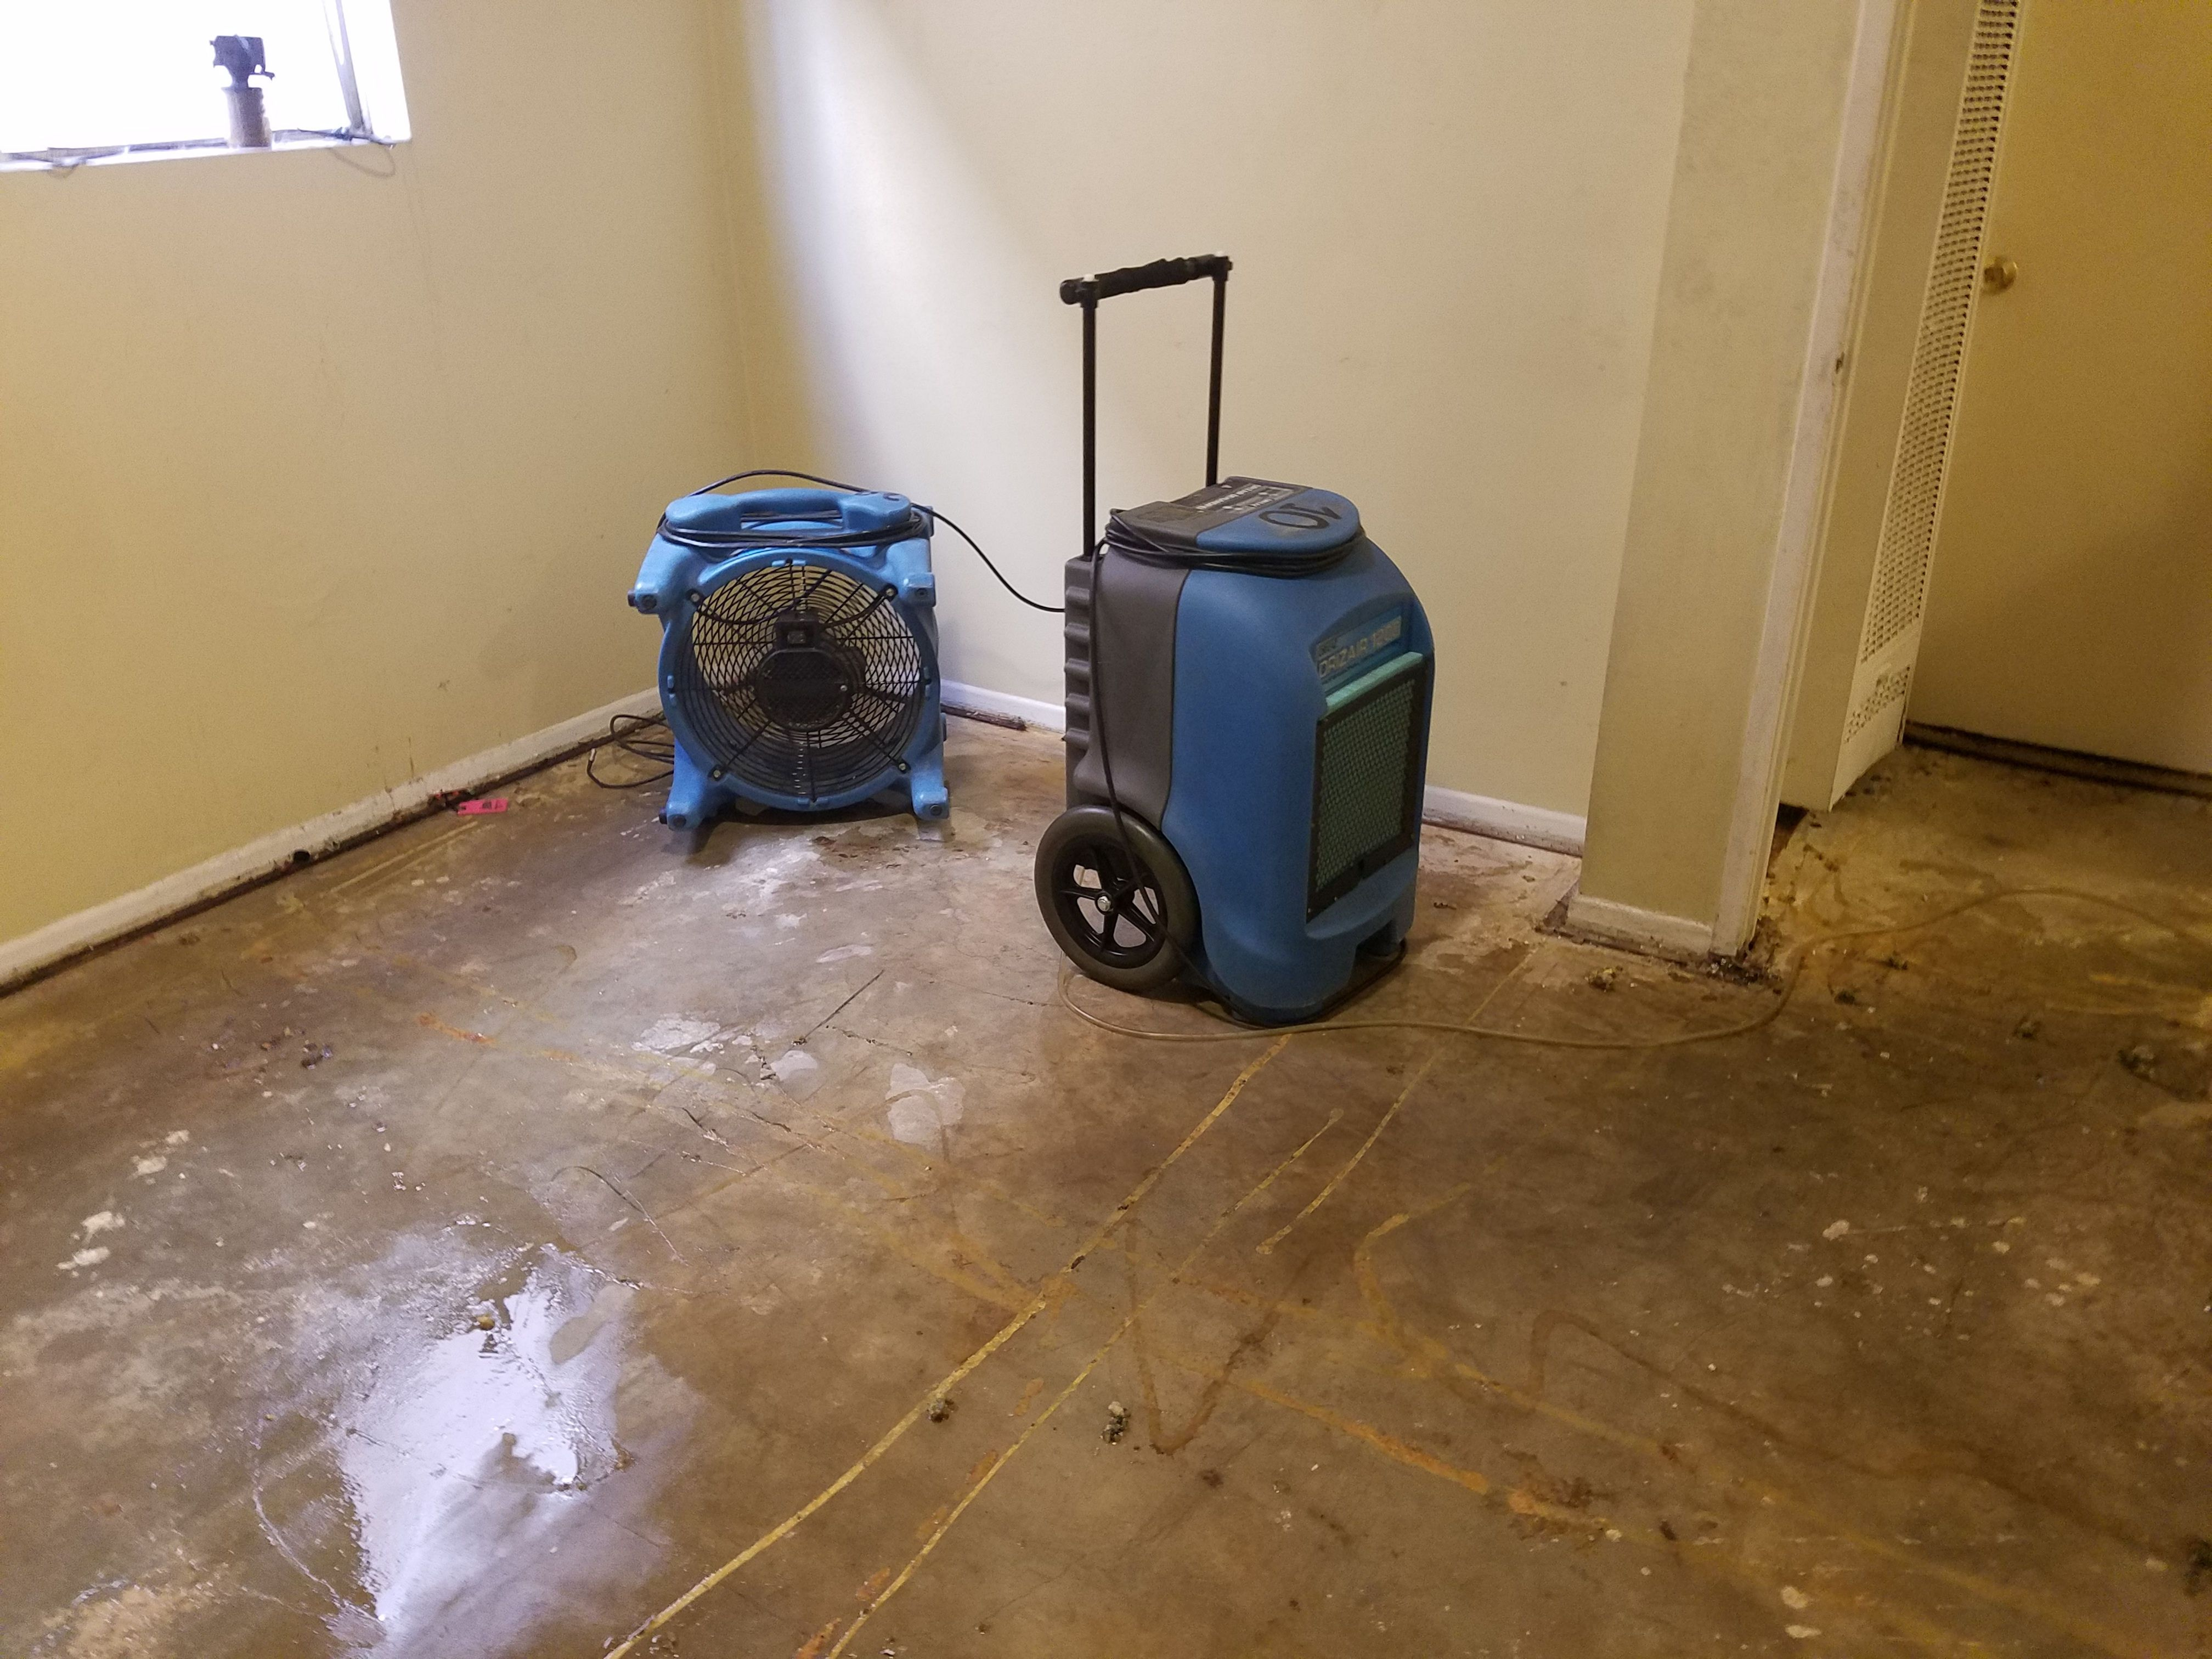 Every minute counts if you have water damage caused by a